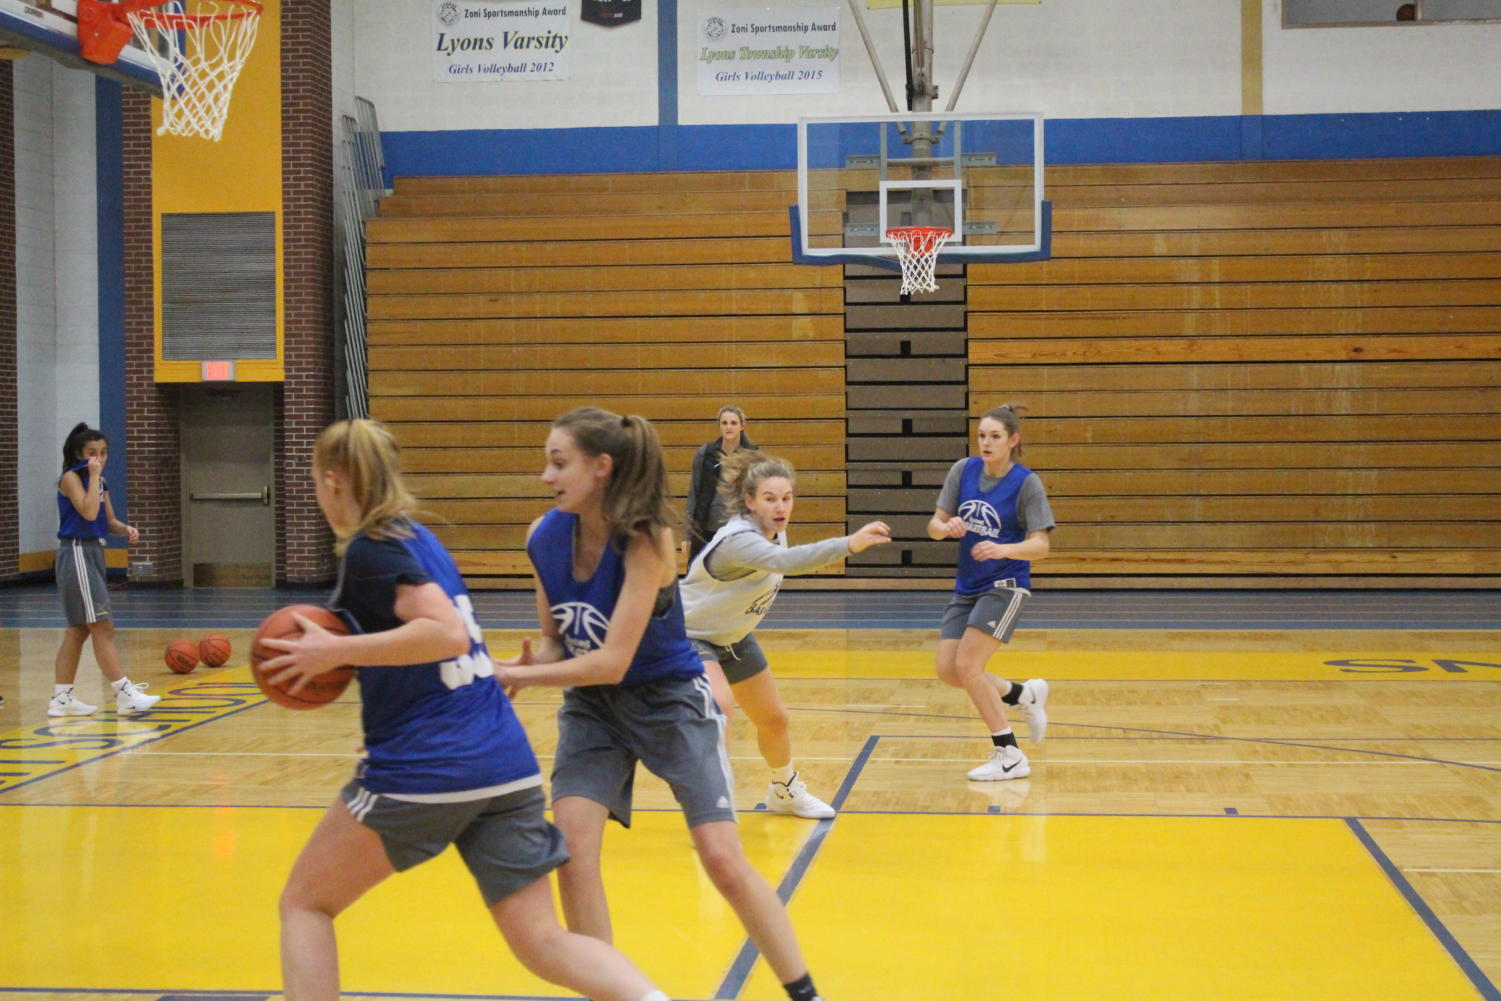 The team practices a scrimmage game to improve their ball-handling skills and competitiveness (Kahn/LION).